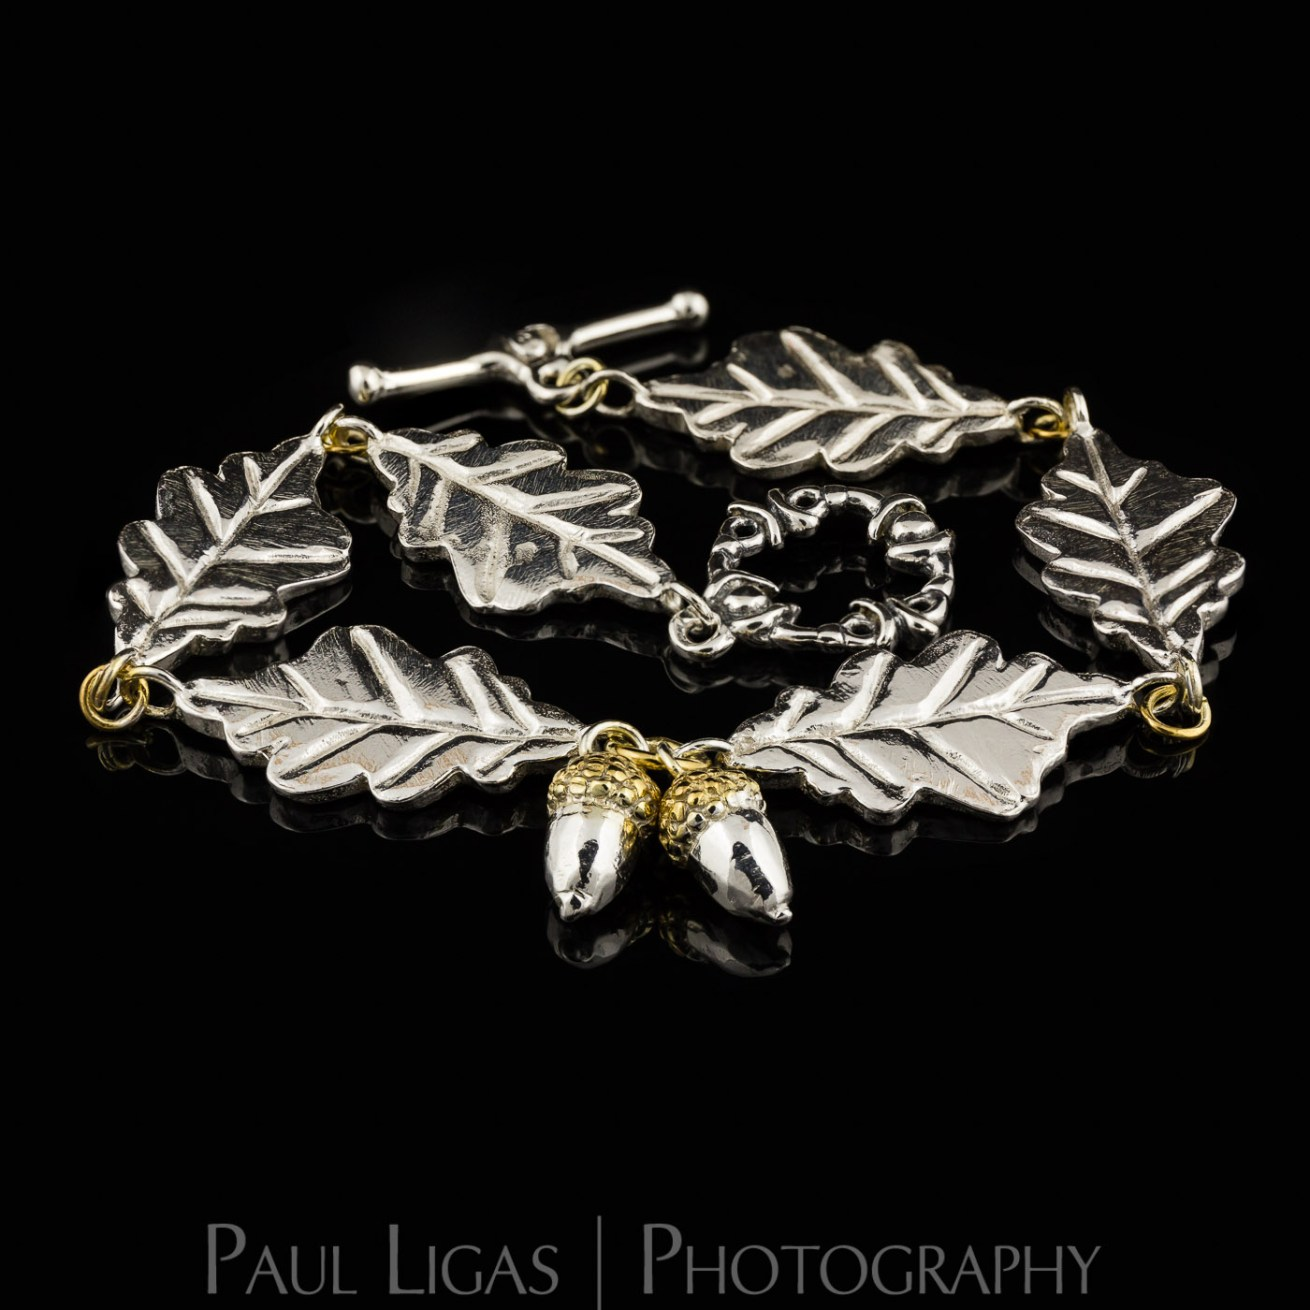 JB Gaynan & Son, Ledbury, Herefordshire jewellery product photographer photography 1811